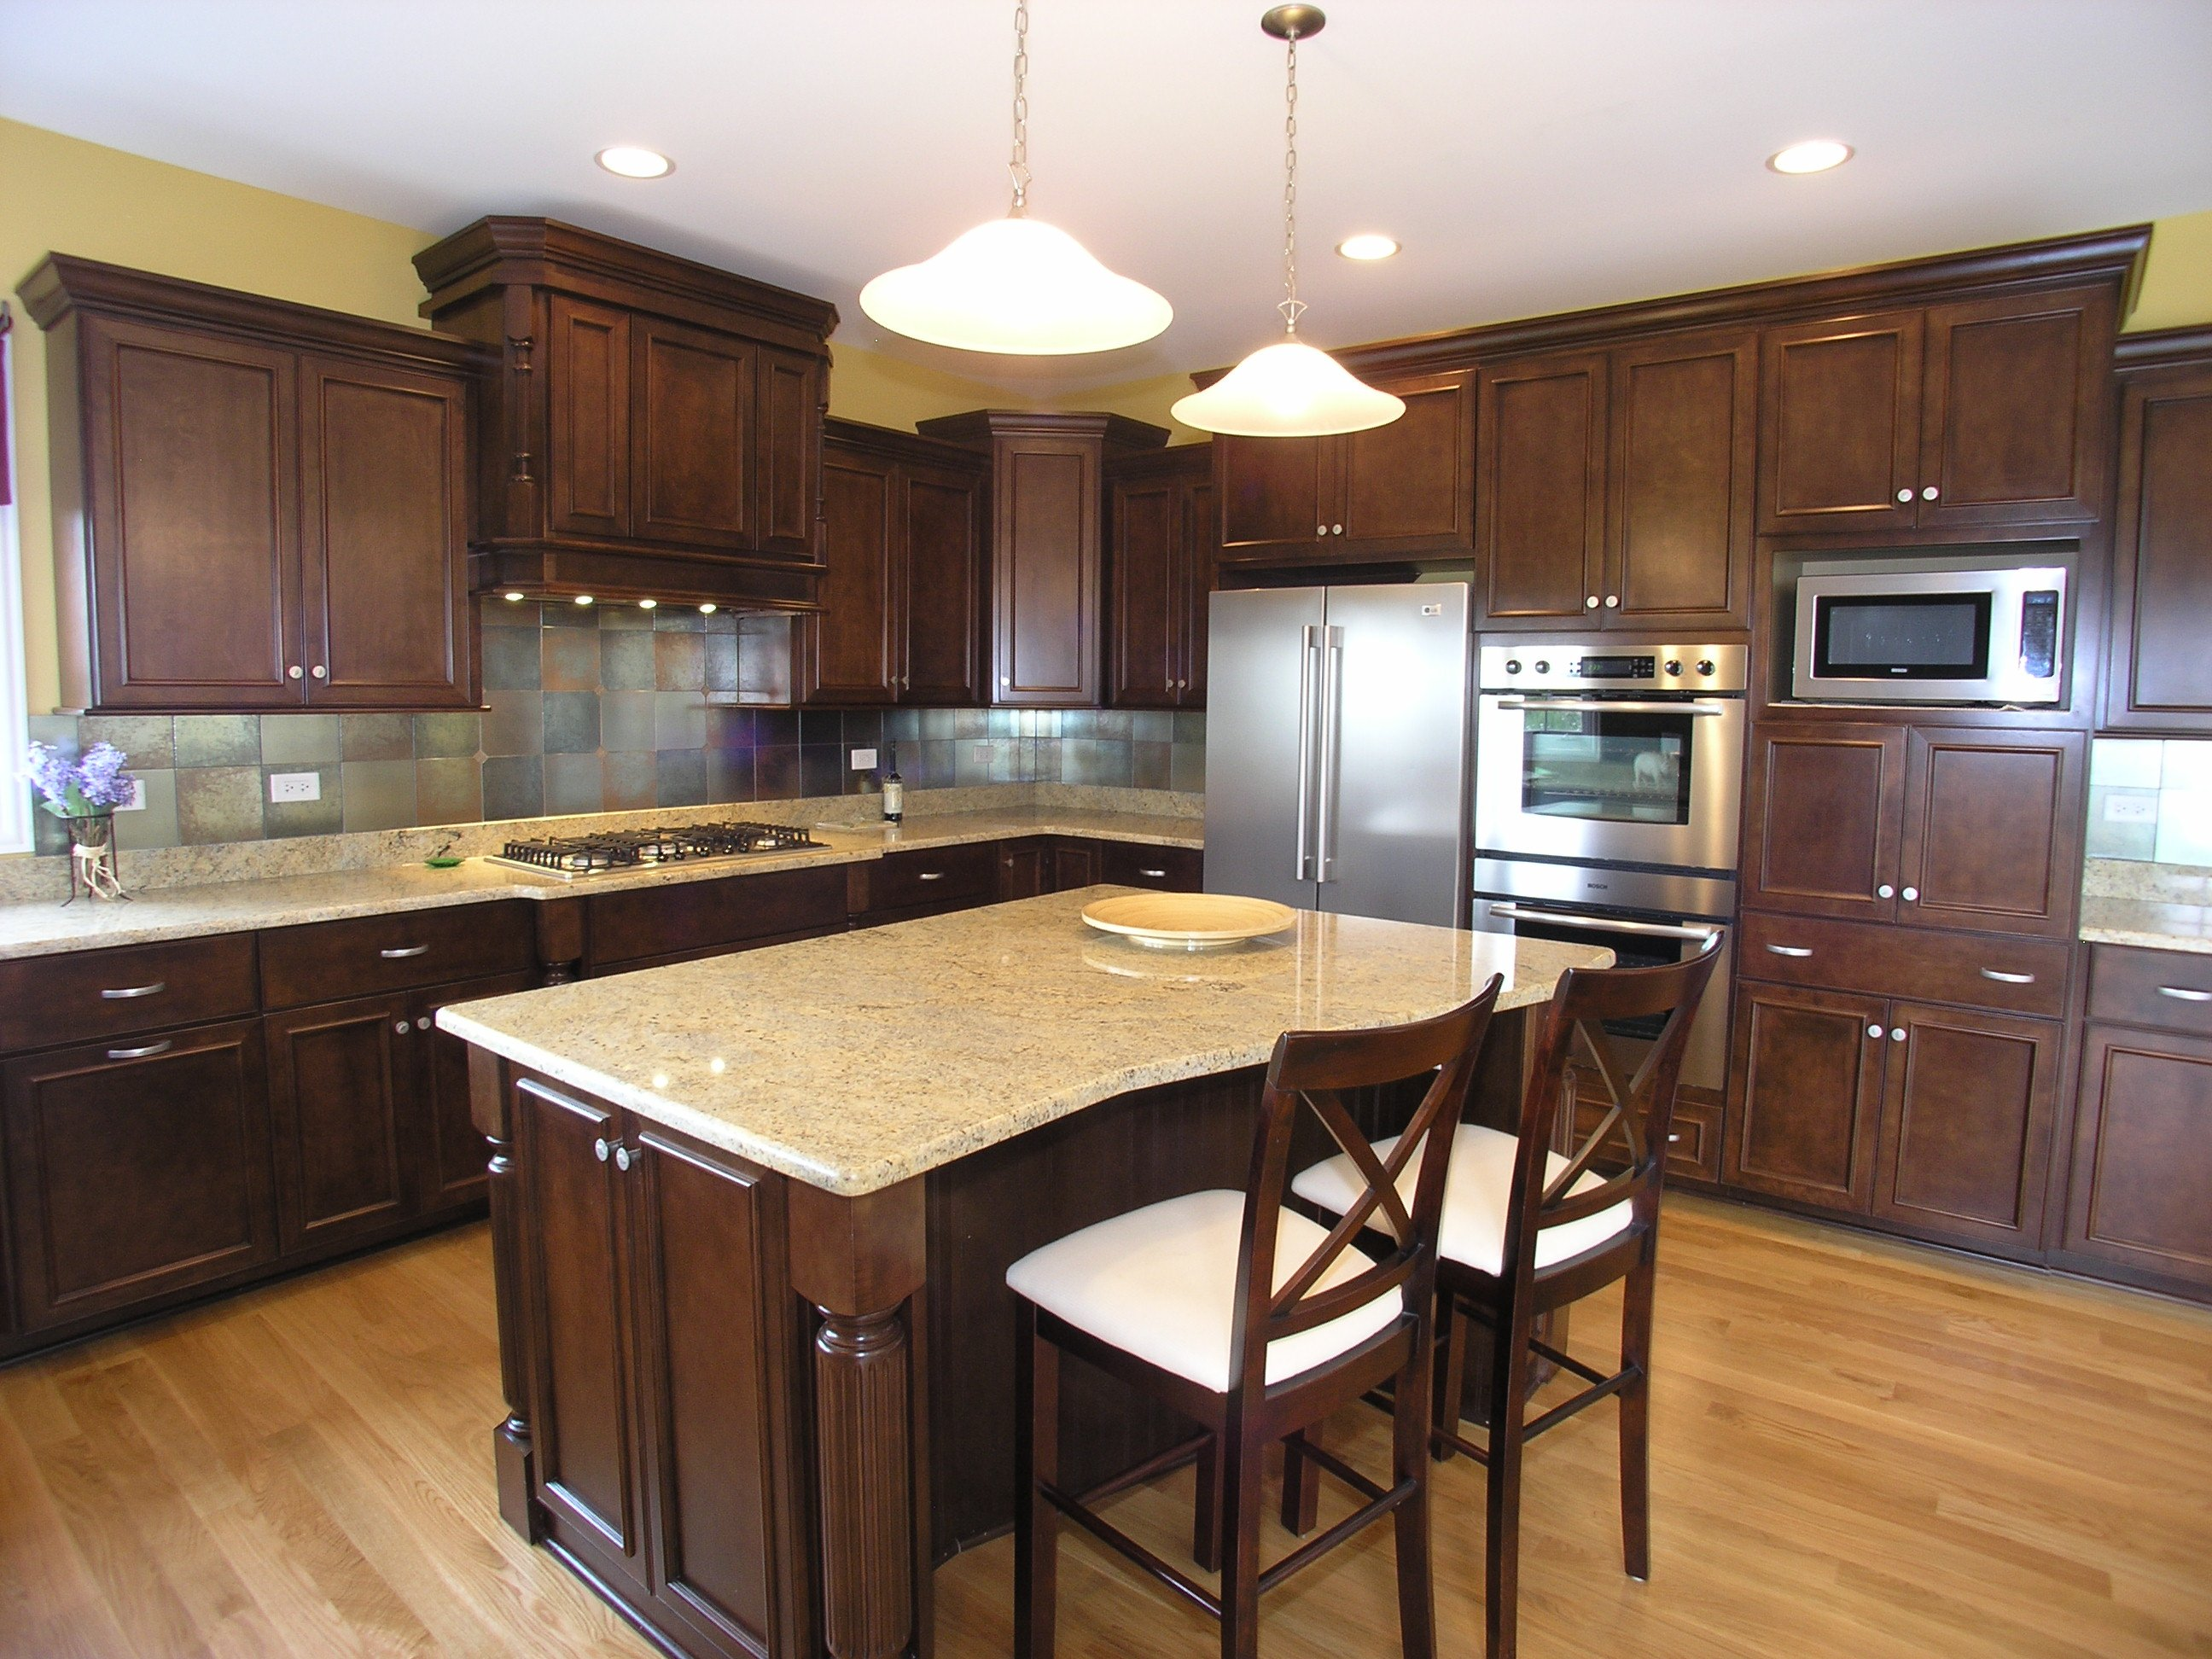 White Kitchen With Granite Granite Kitchen Countertops My Beautiful Kitchen Renovation With